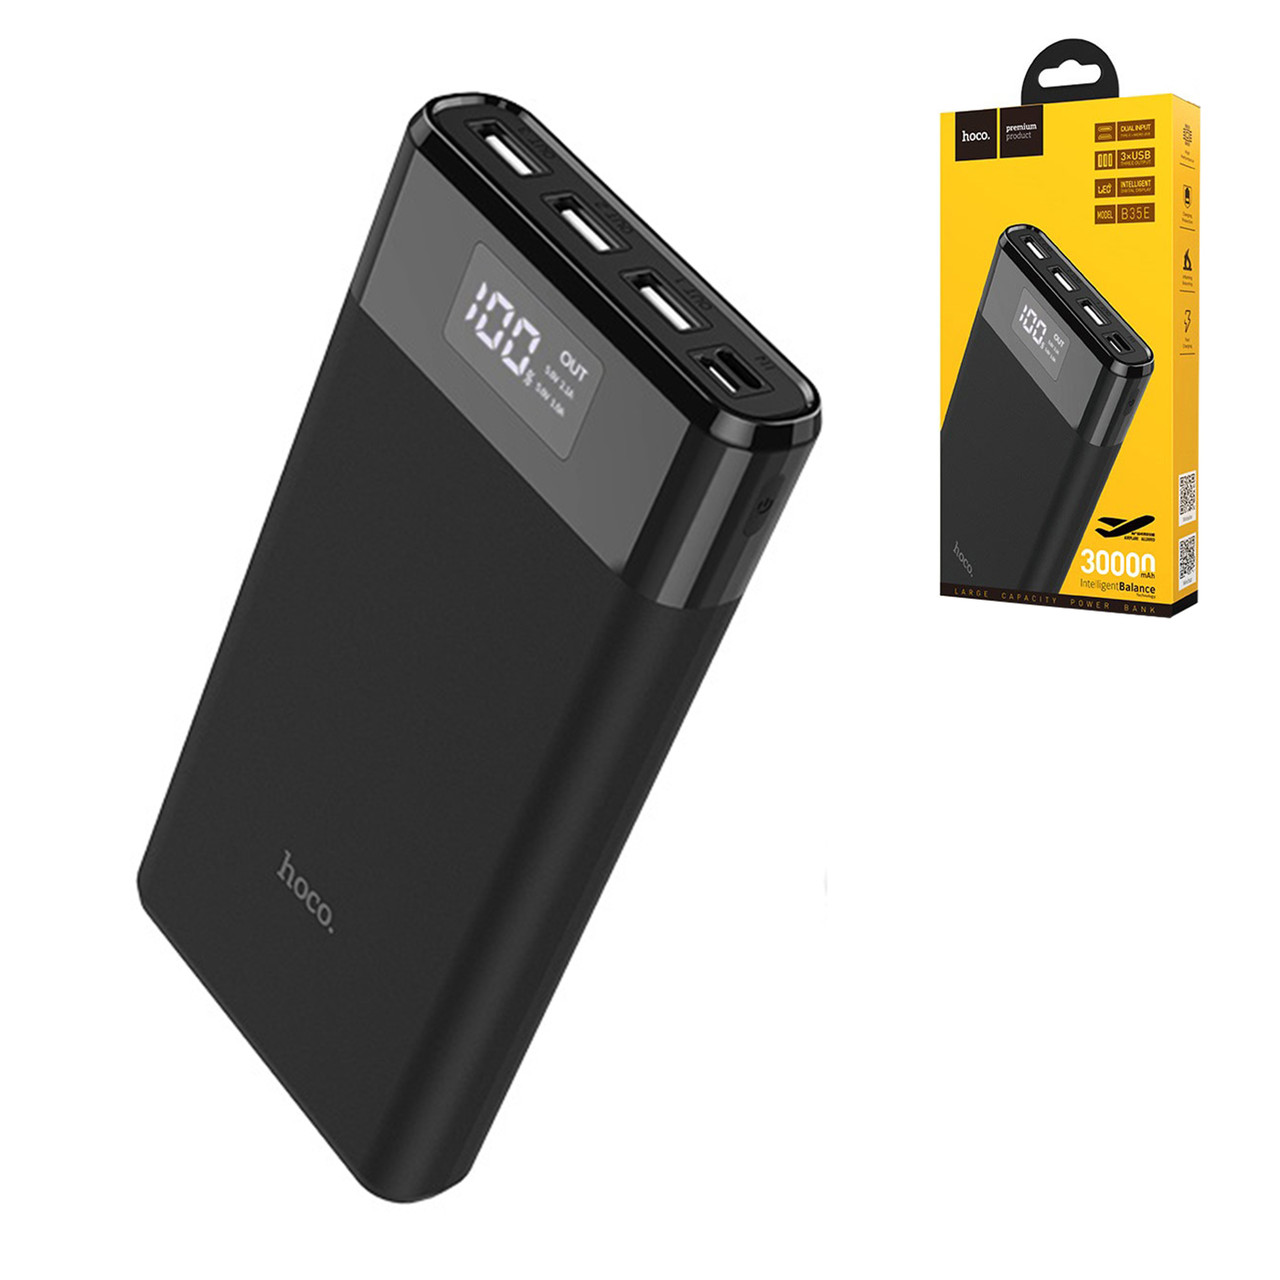 Power bank Hoco B35E 30000mAh 3XUSB-2.0A, Black